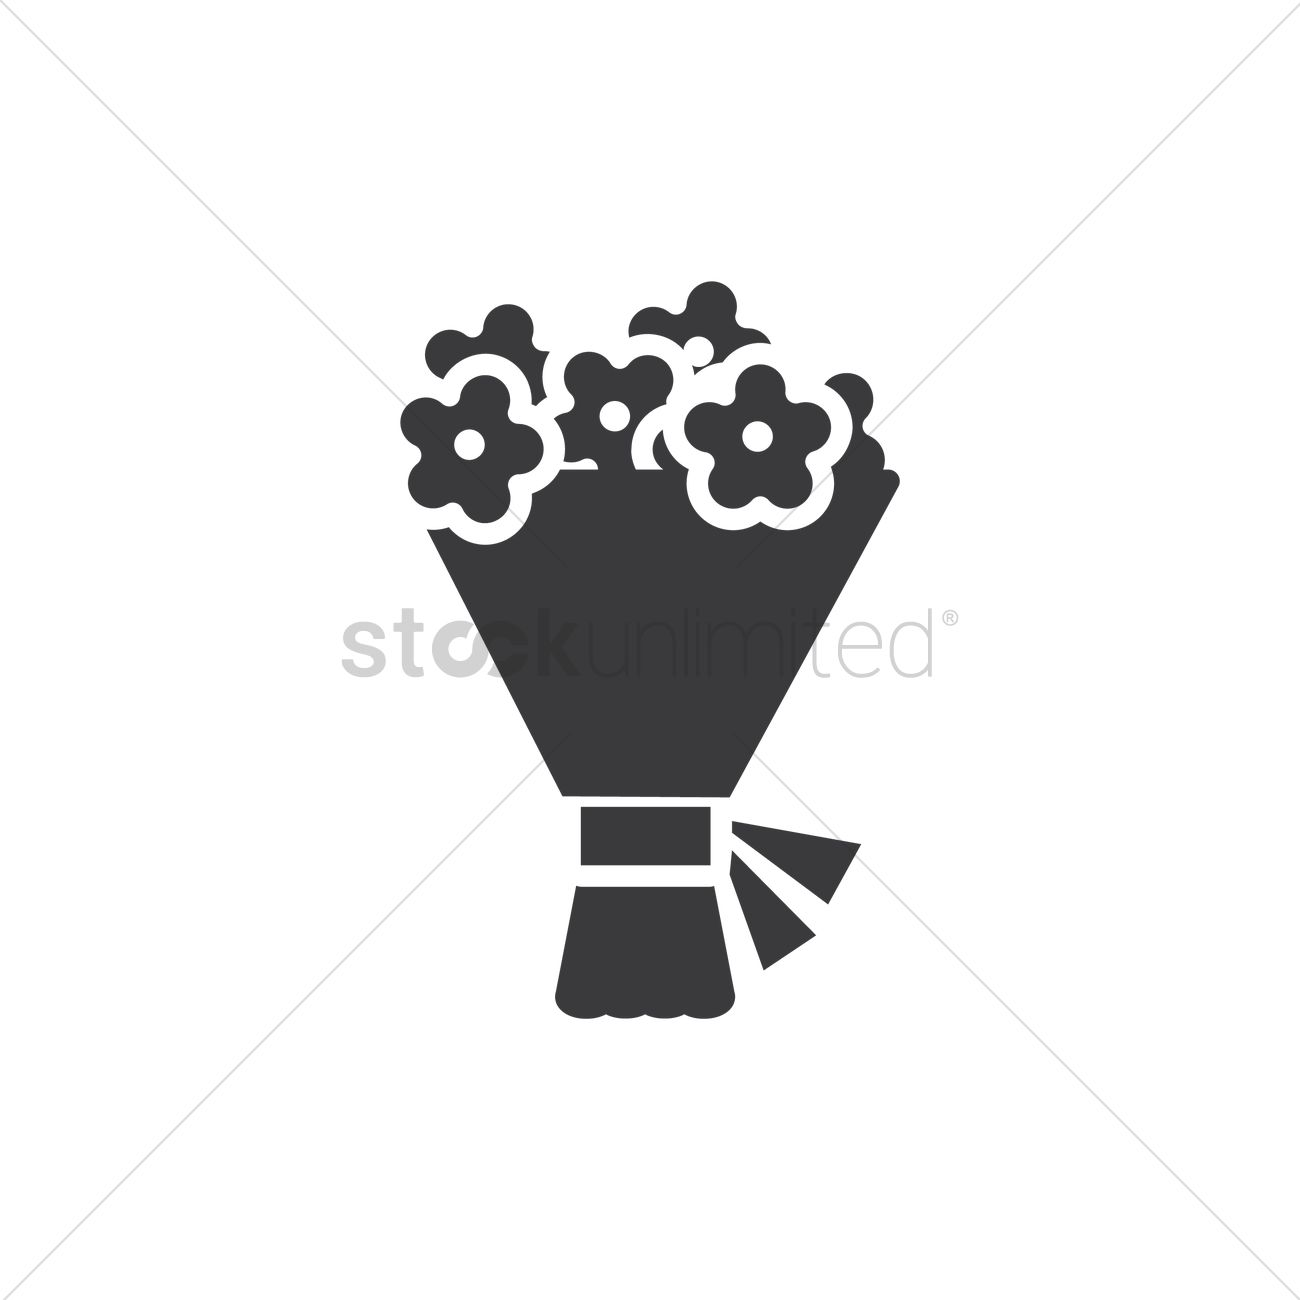 Flower Bouquet Vector Image 1973423 Stockunlimited